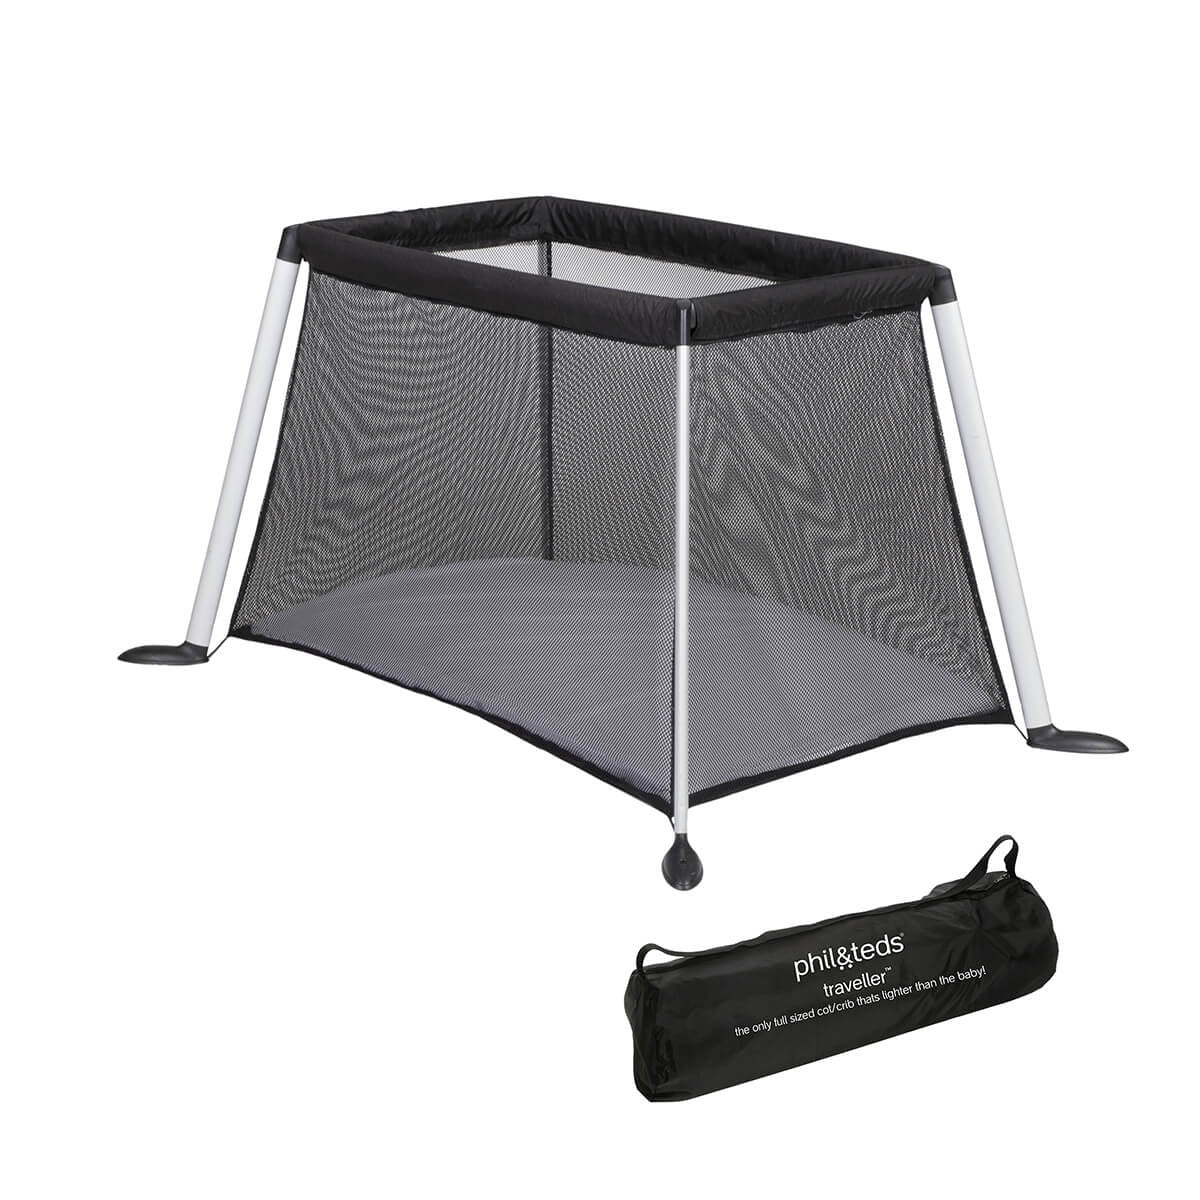 crib teds travel and phil p cribs playards traveller black